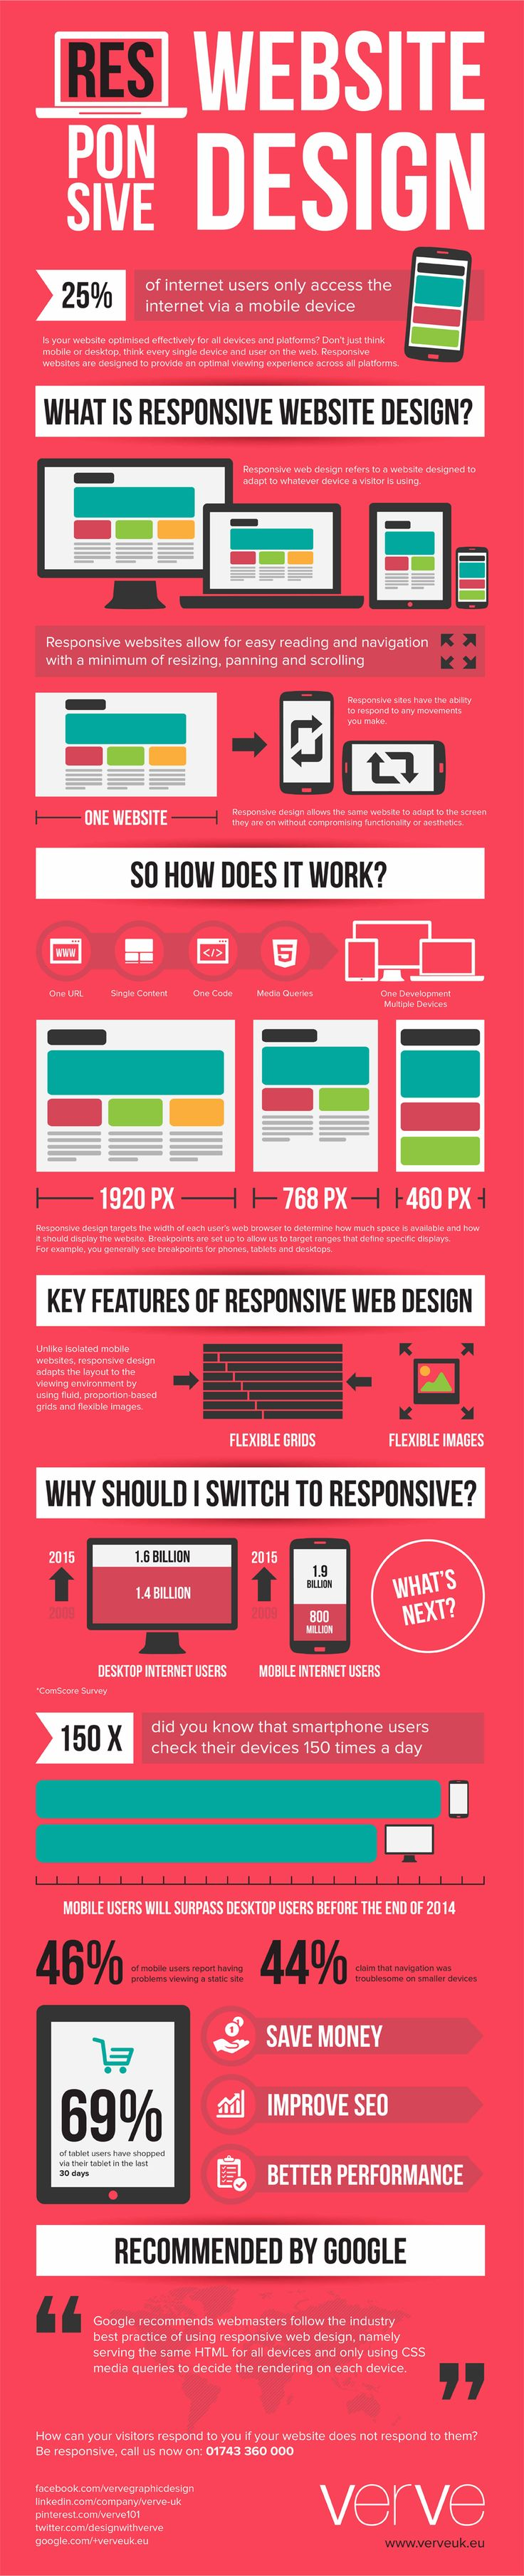 "Infographic with data & information that answers the question ""What Is Responsive Web Design"". Come take a look, we guarantee you will want to share it!"